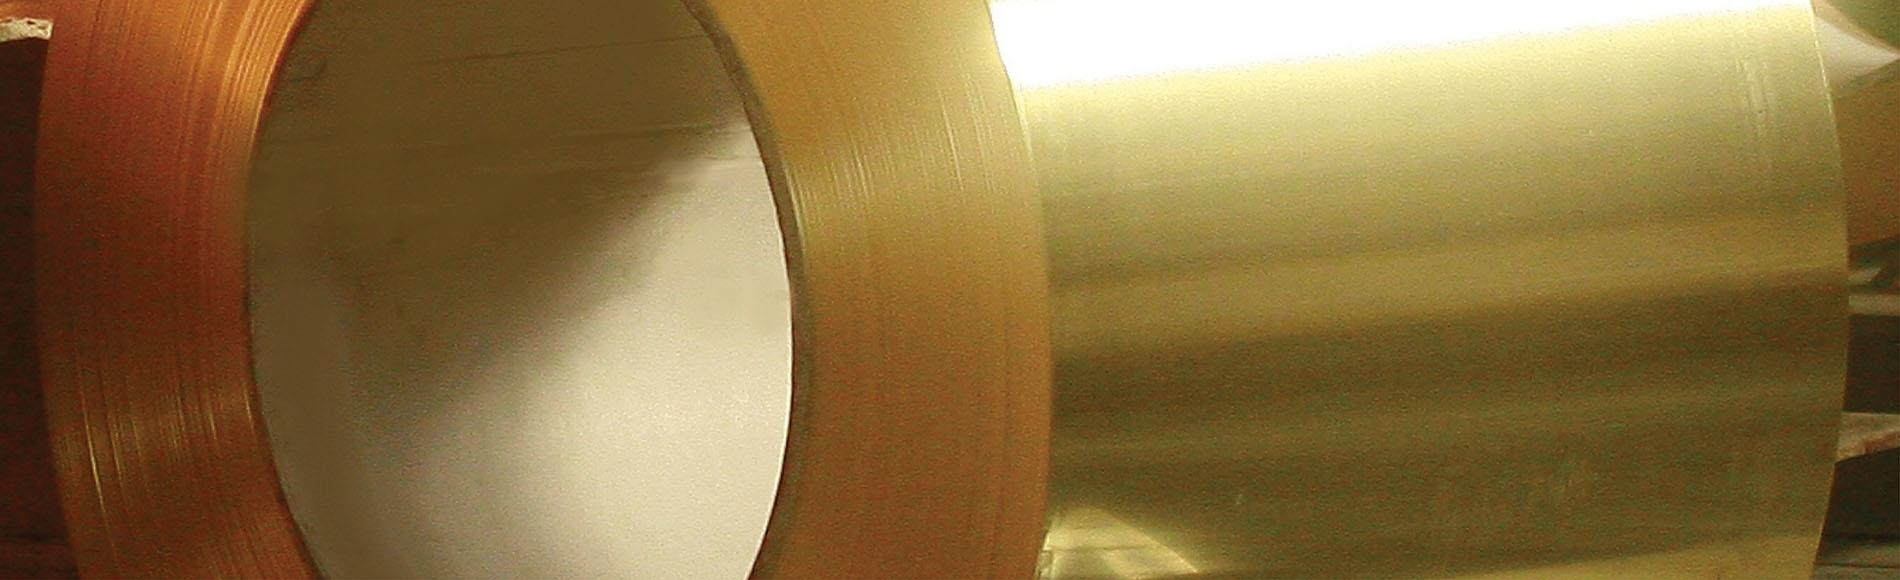 http://www.fitco.gr/userfiles/45aad4a2-7fba-4093-8a2a-a6de00bc5a0a/02_01-copper-alloy-tapes_master-photo.jpg?quality=75&w=1900